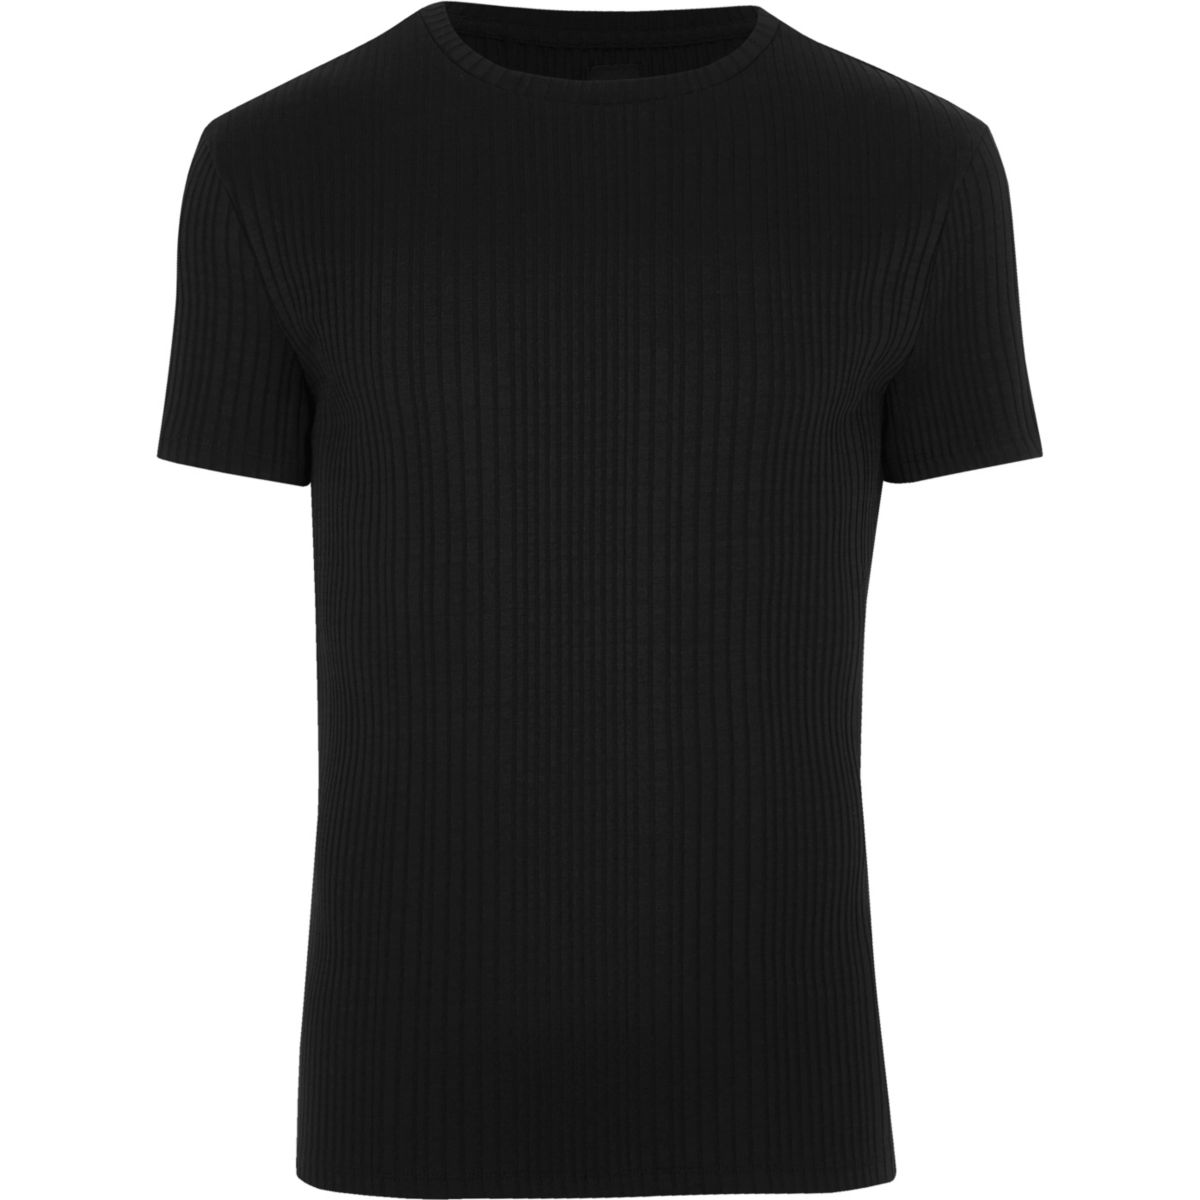 Black ribbed muscle fit crew neck T-shirt